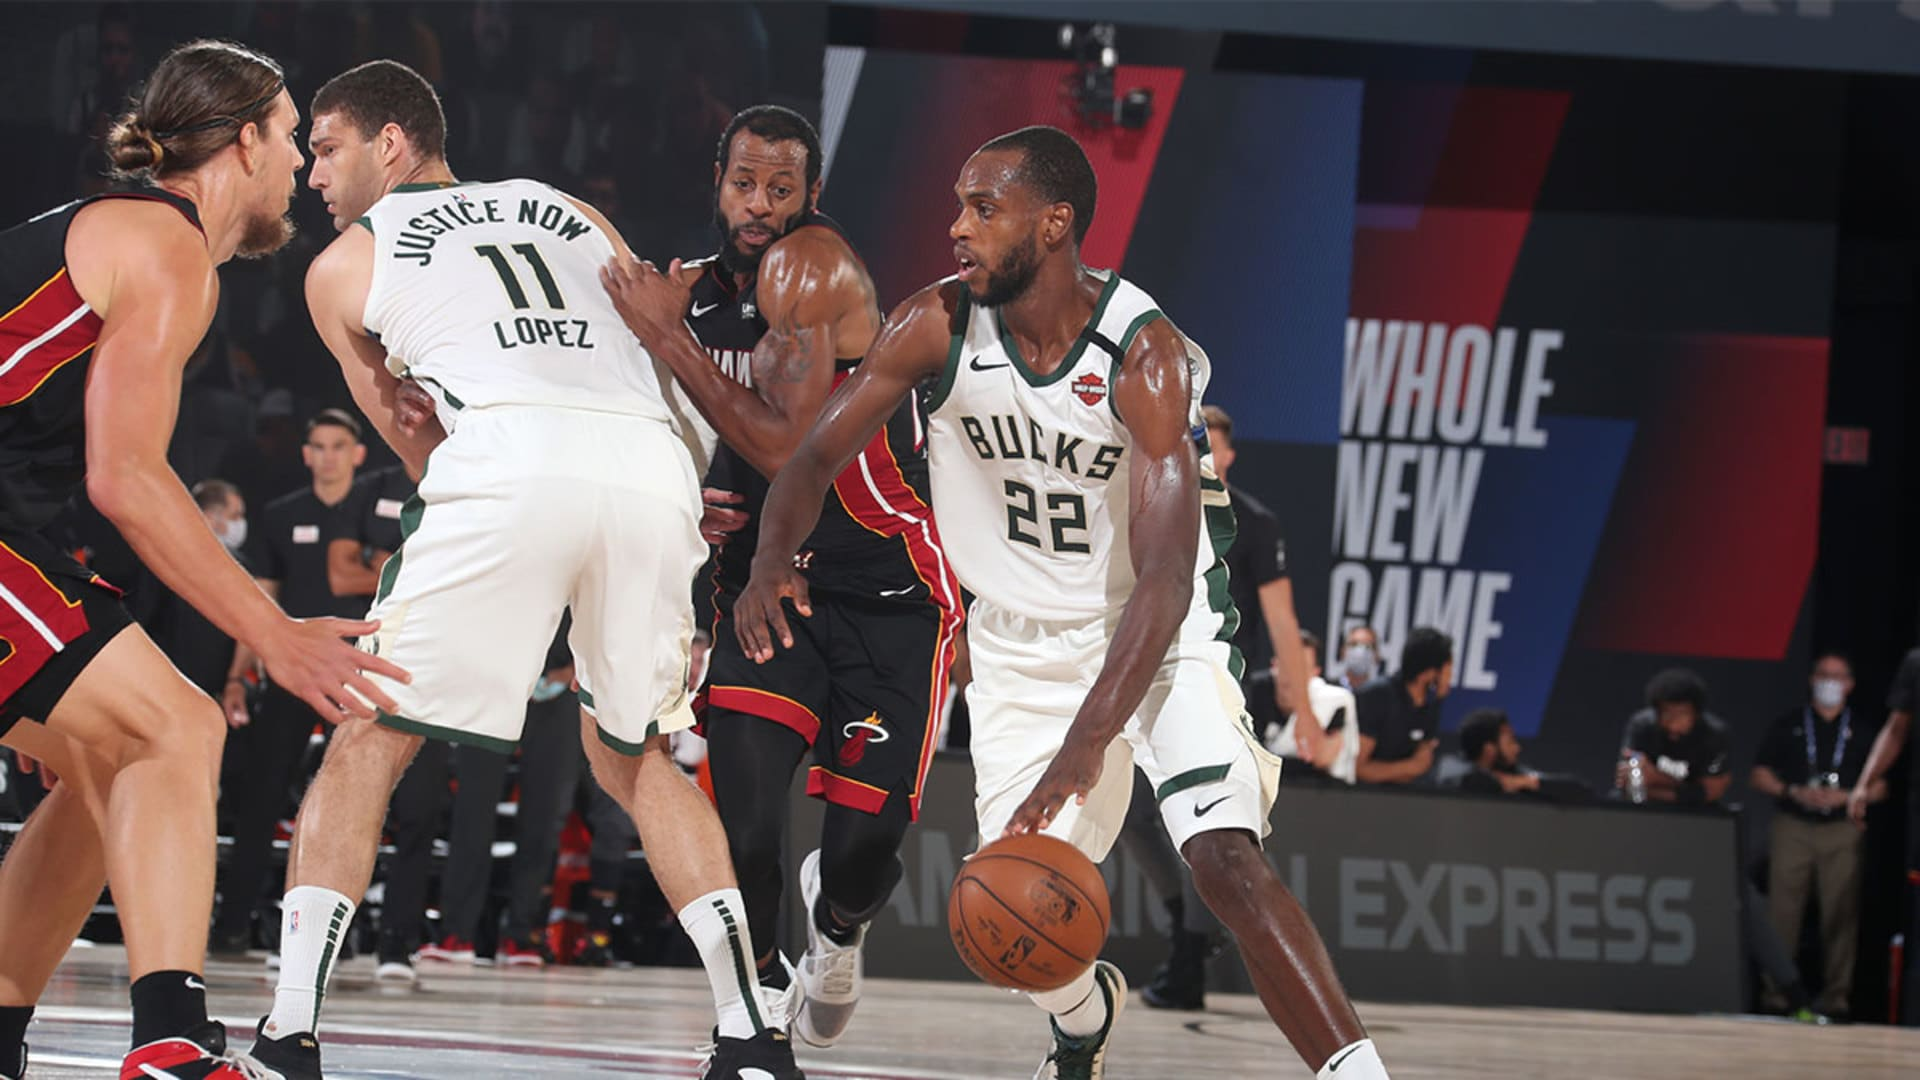 Game Highlights: Bucks 94 - Heat 103 | 9.08.20